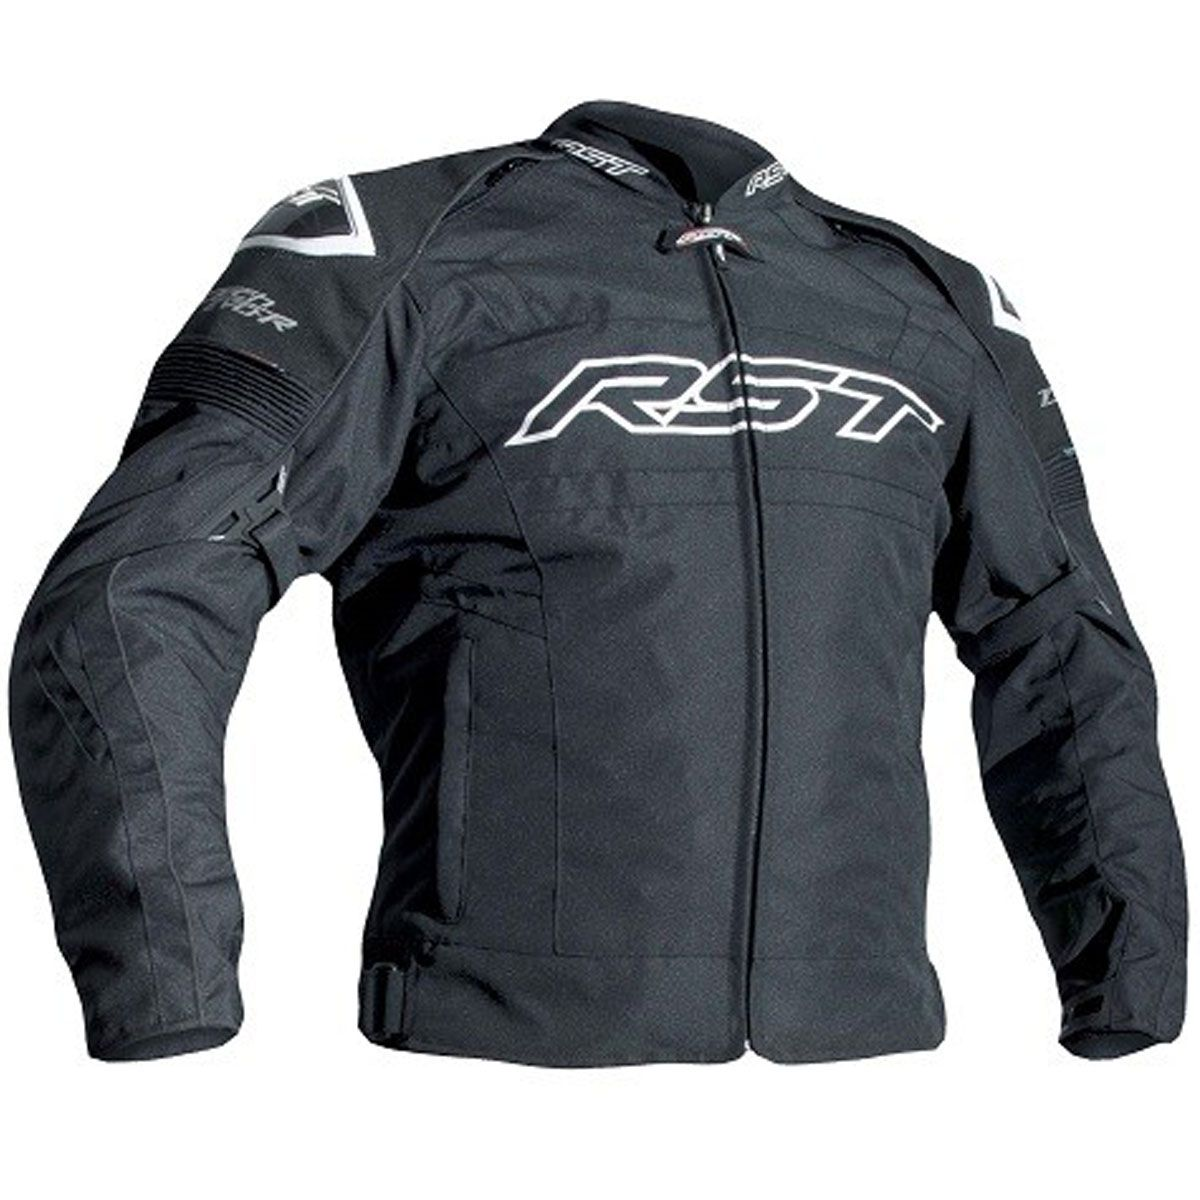 RST Tractech Evo R CE Textile Jacket Black